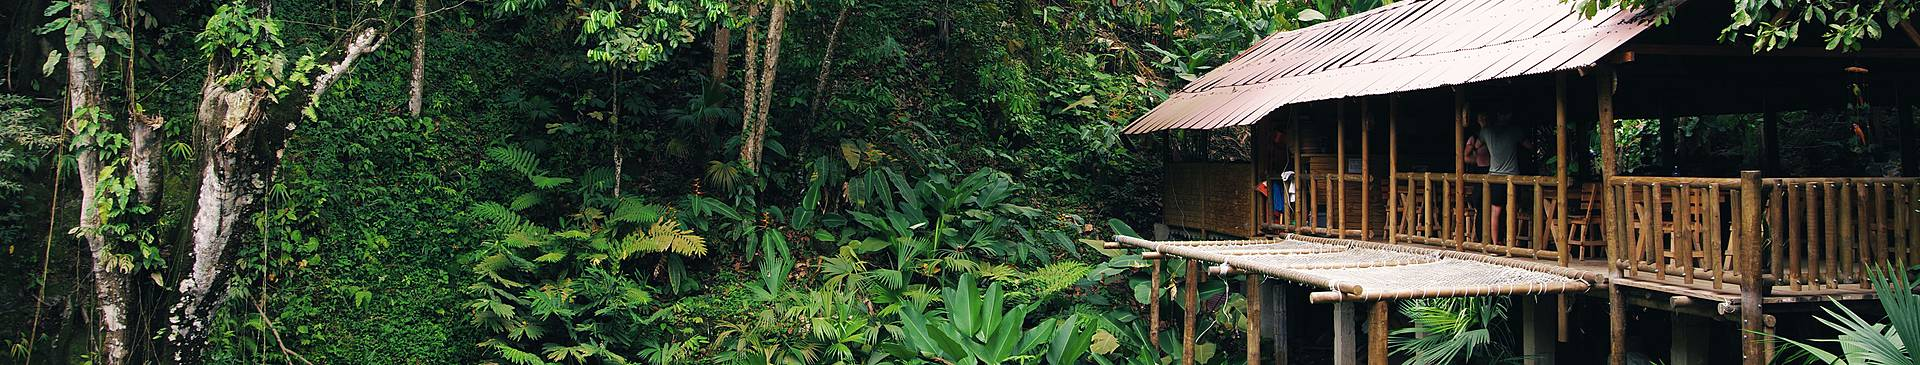 Rainforest tours in Colombia